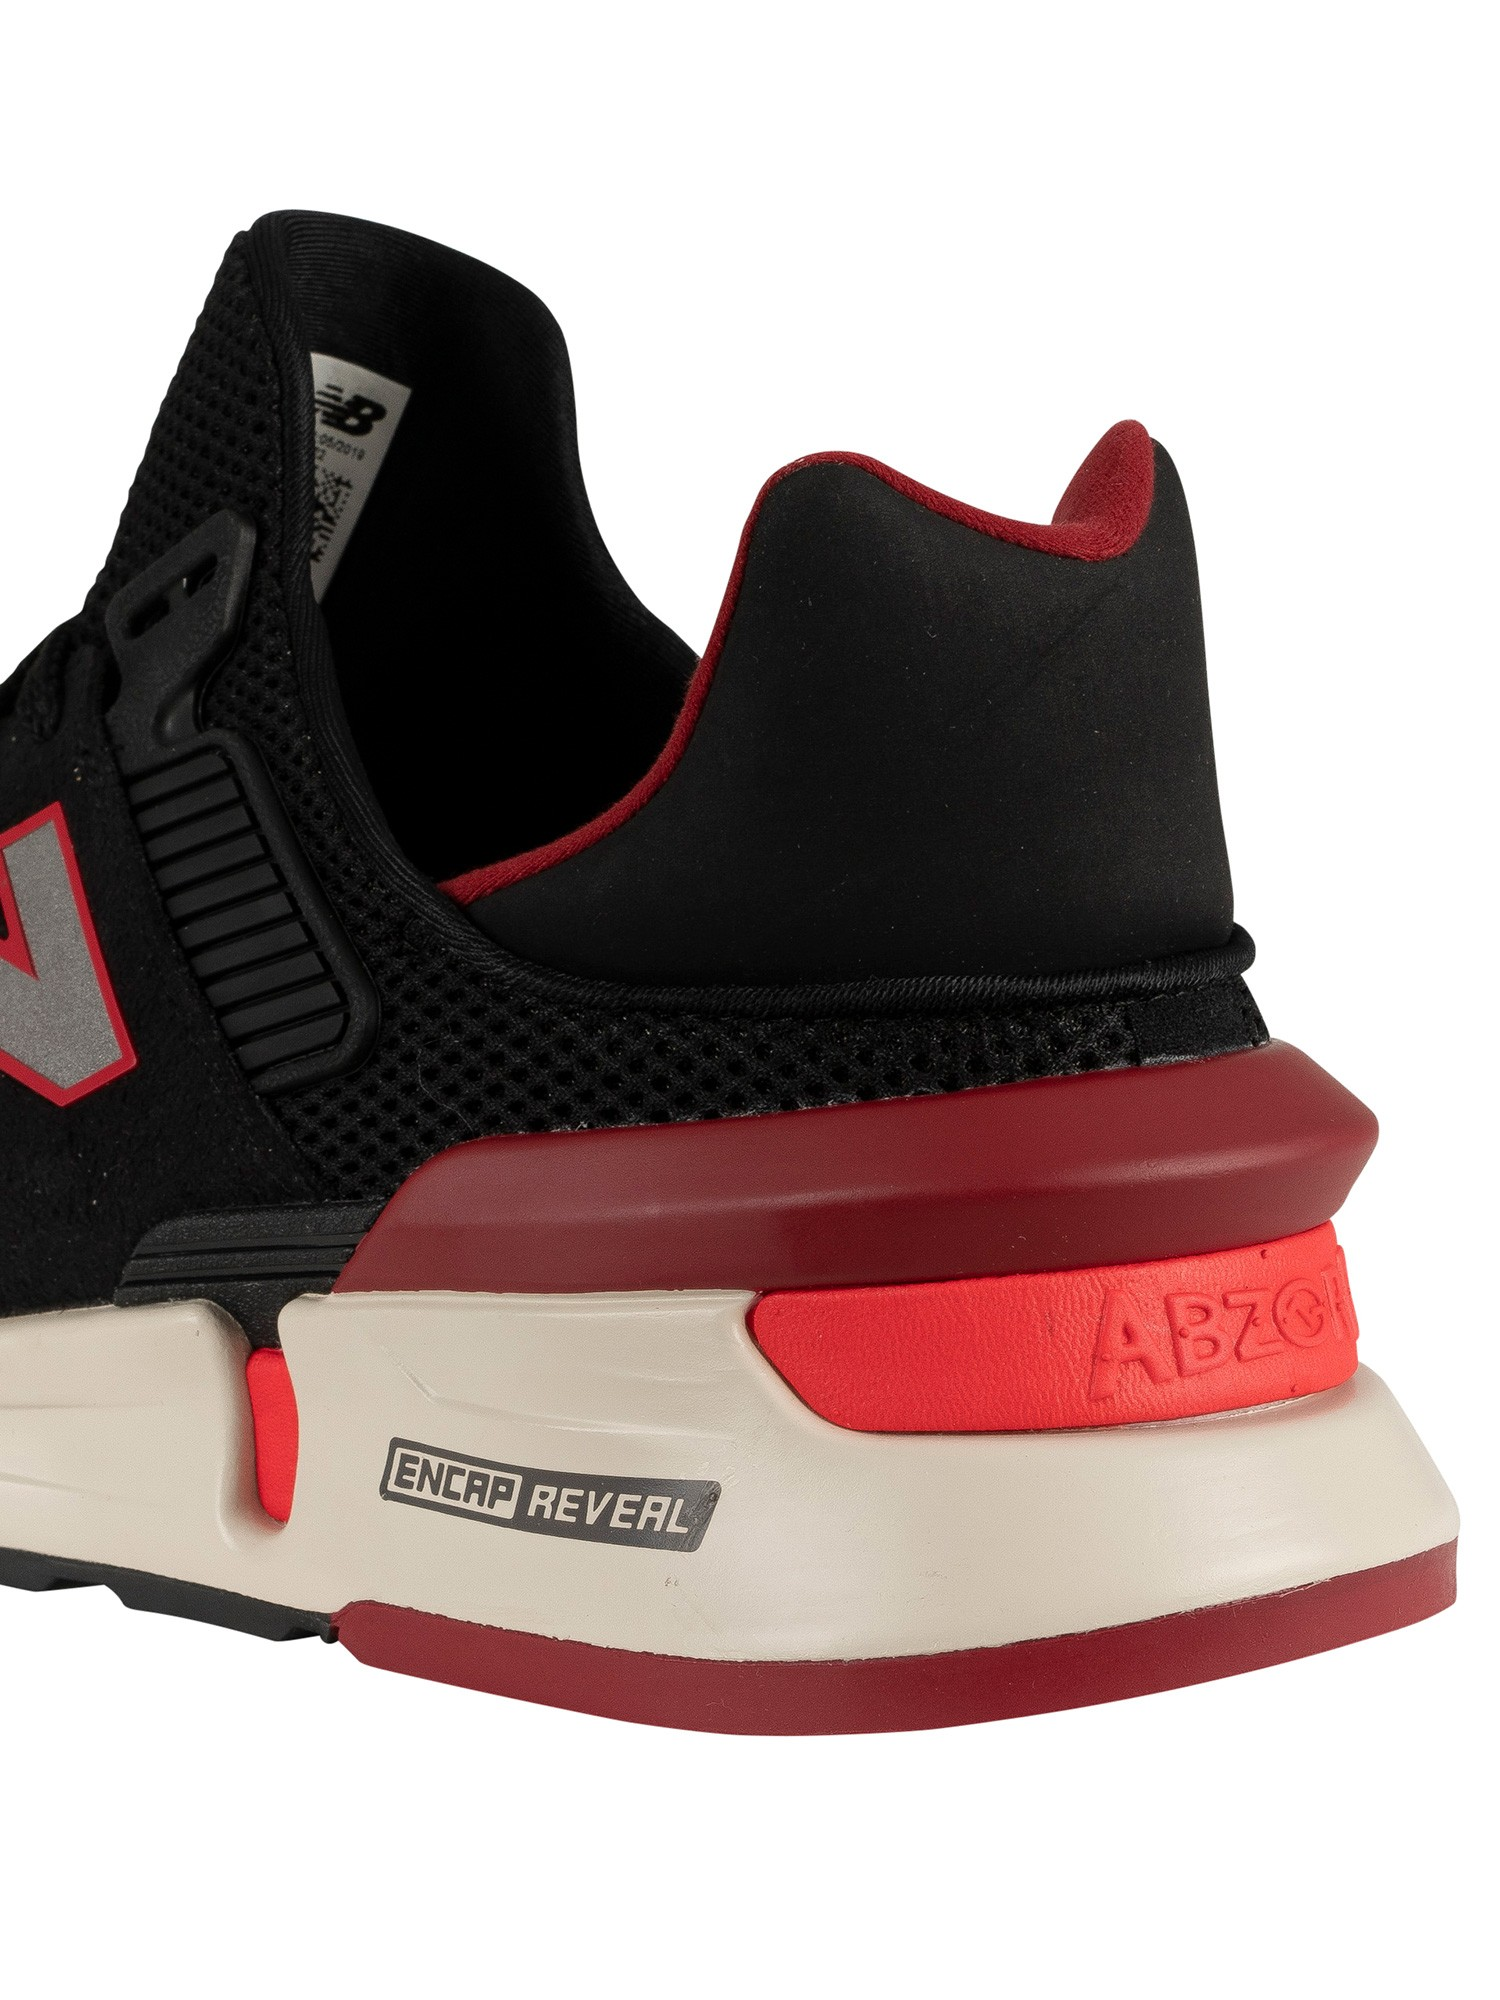 quality design 01bbb 06e4c New Balance 997 Trainers - Black/Red